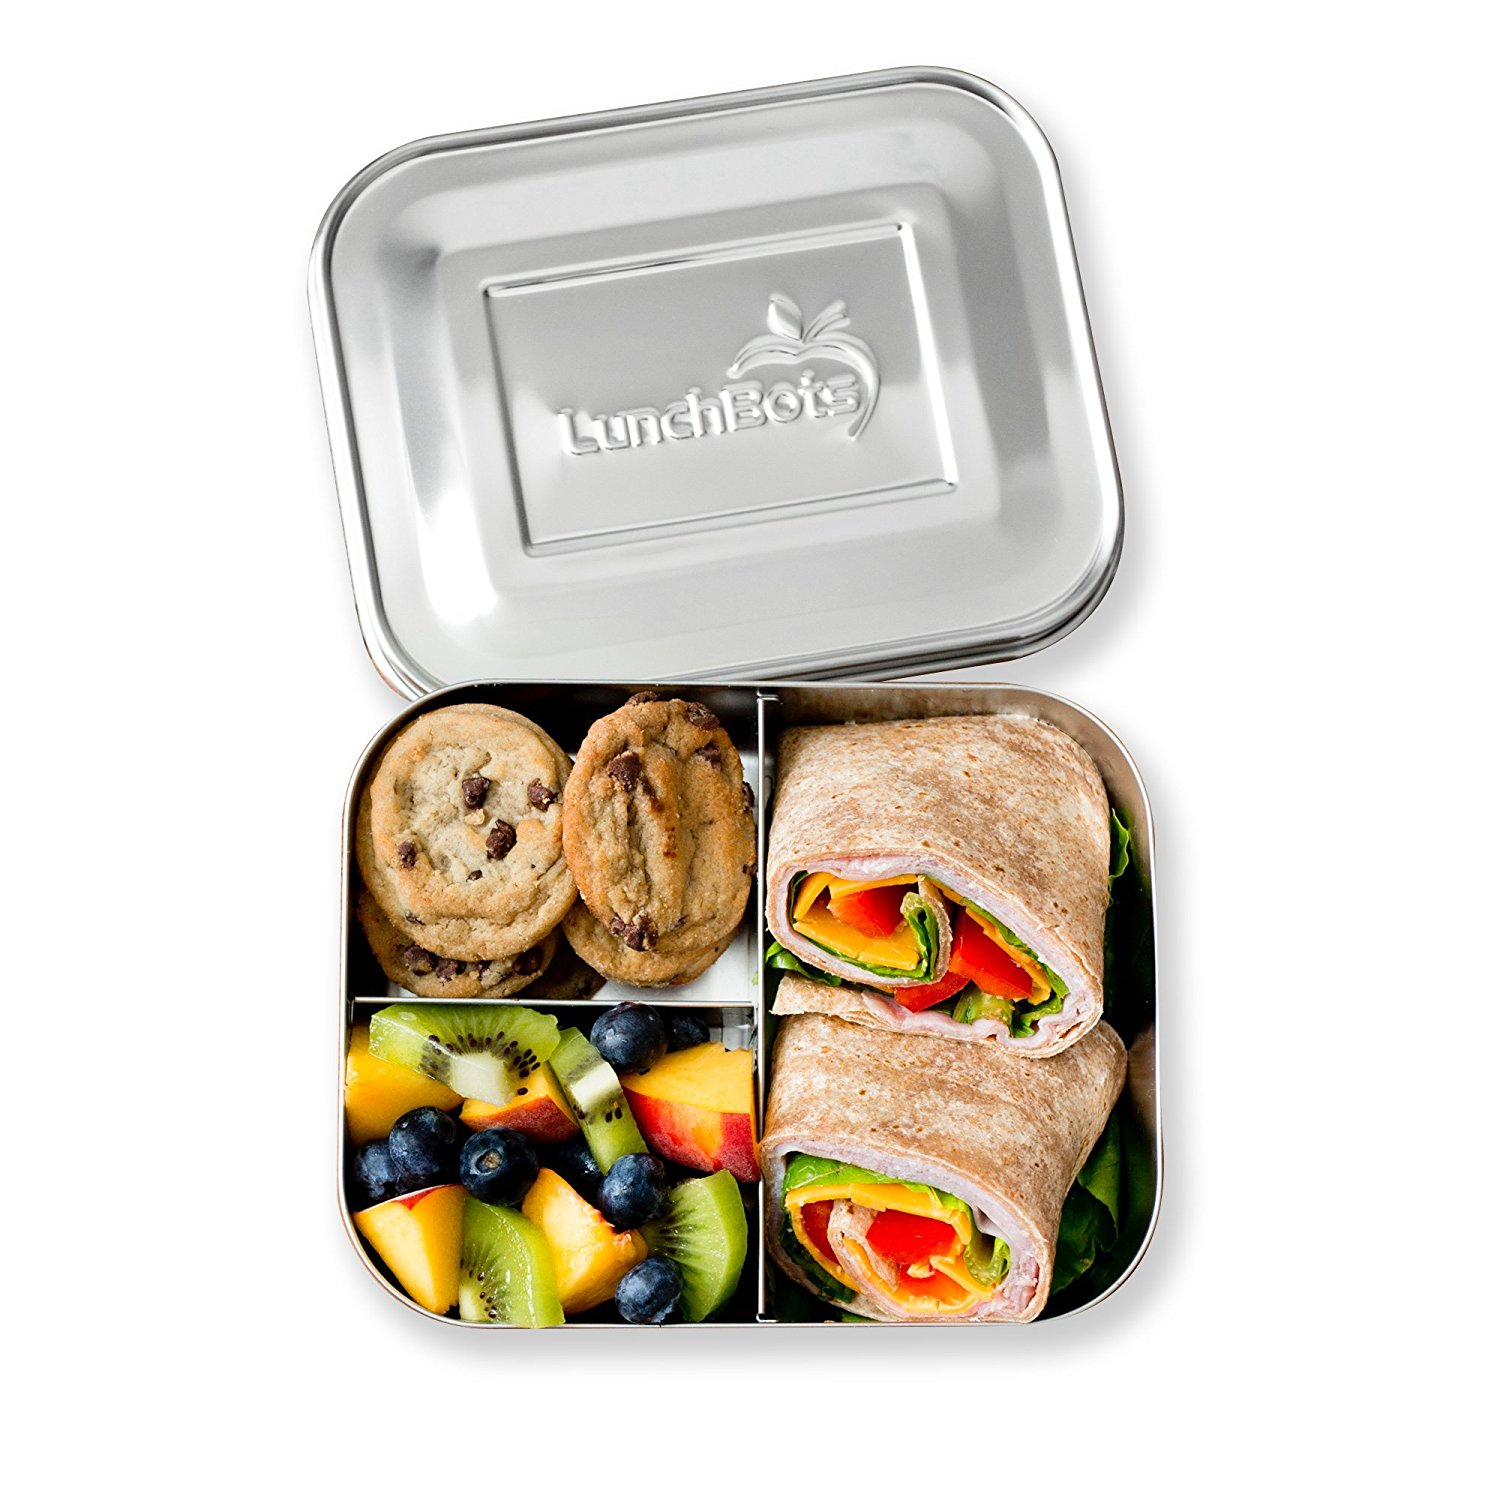 sustainable eco-friendly stainless steel lunch container ukonserve lunchbots trio II